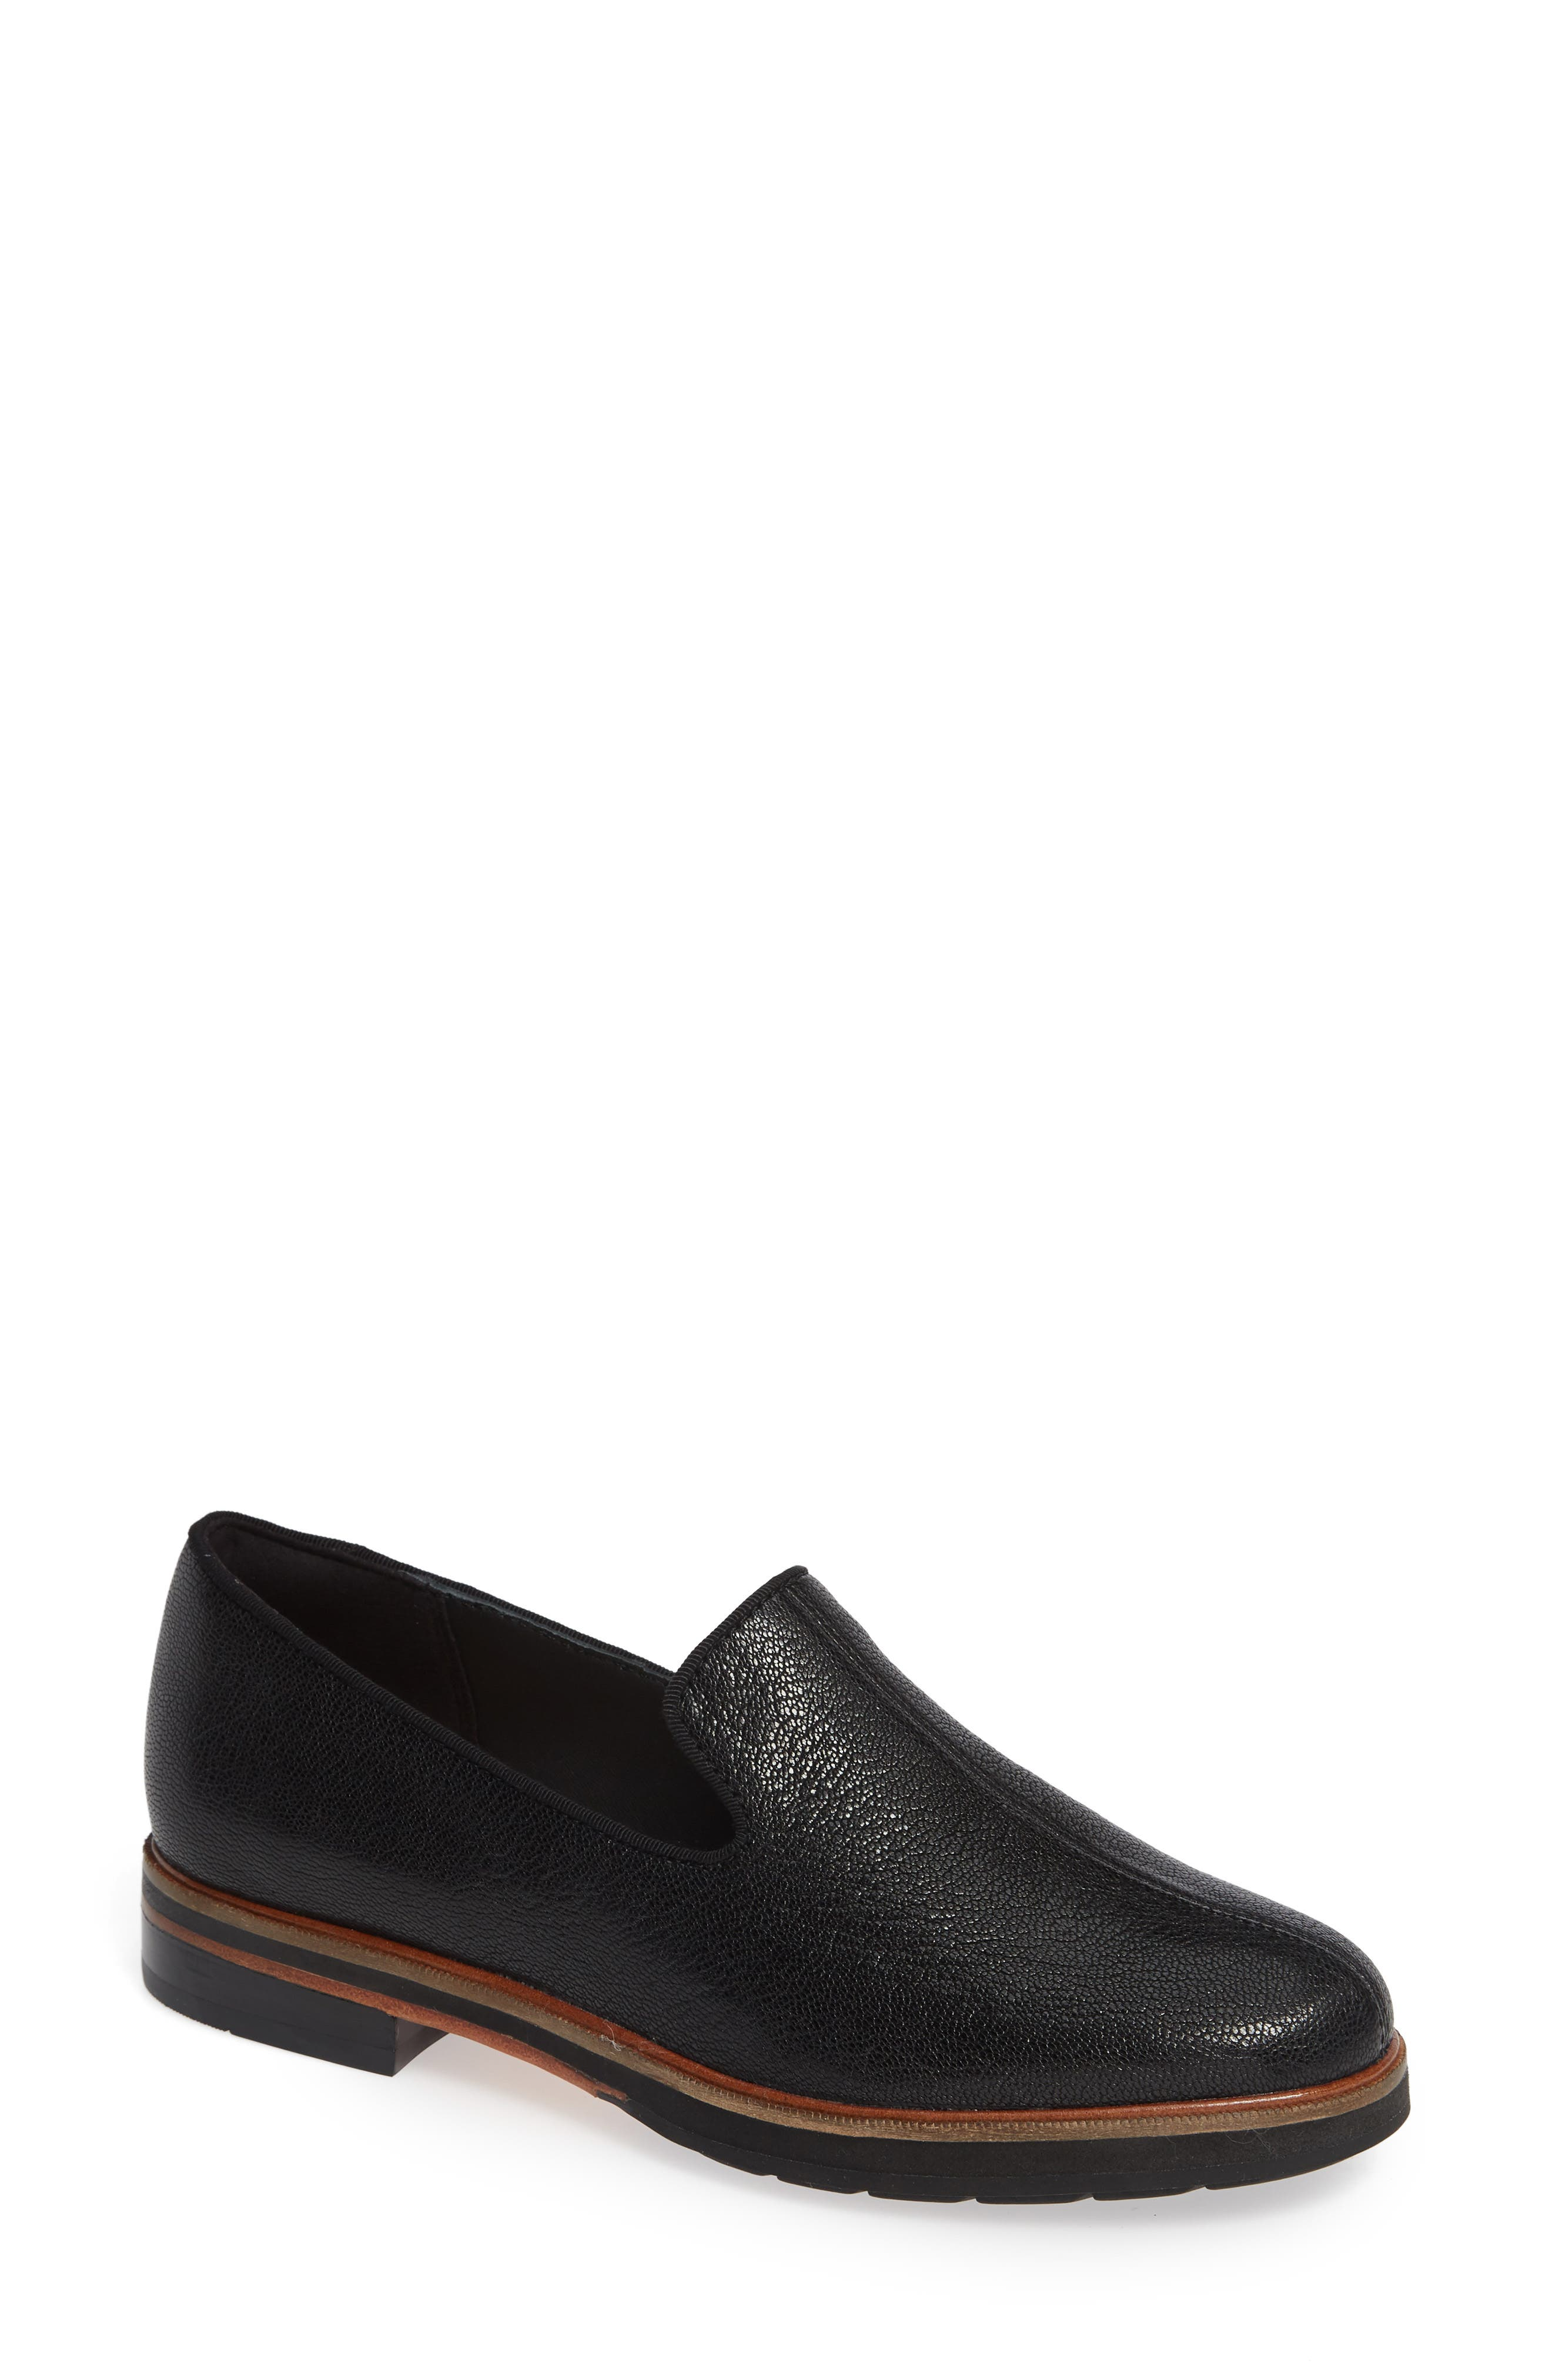 CLARKS<SUP>®</SUP> Frida Loafer, Main, color, BLACK TUMBLED LEATHER